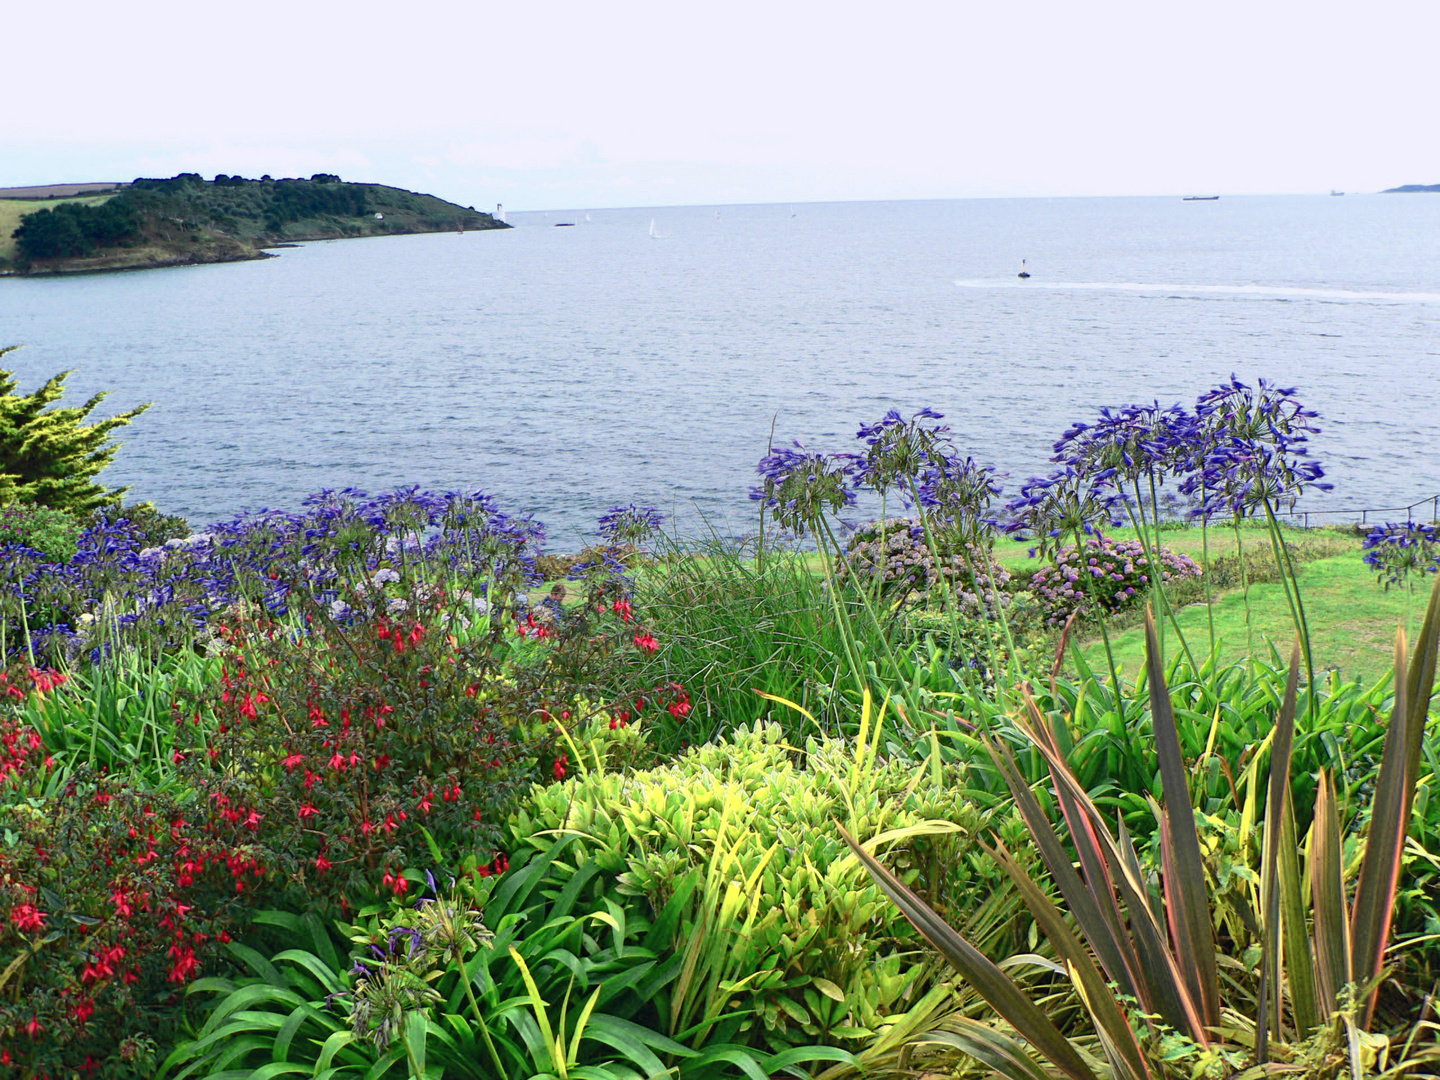 View from St. Mawes Castle over the Gerrans Bay